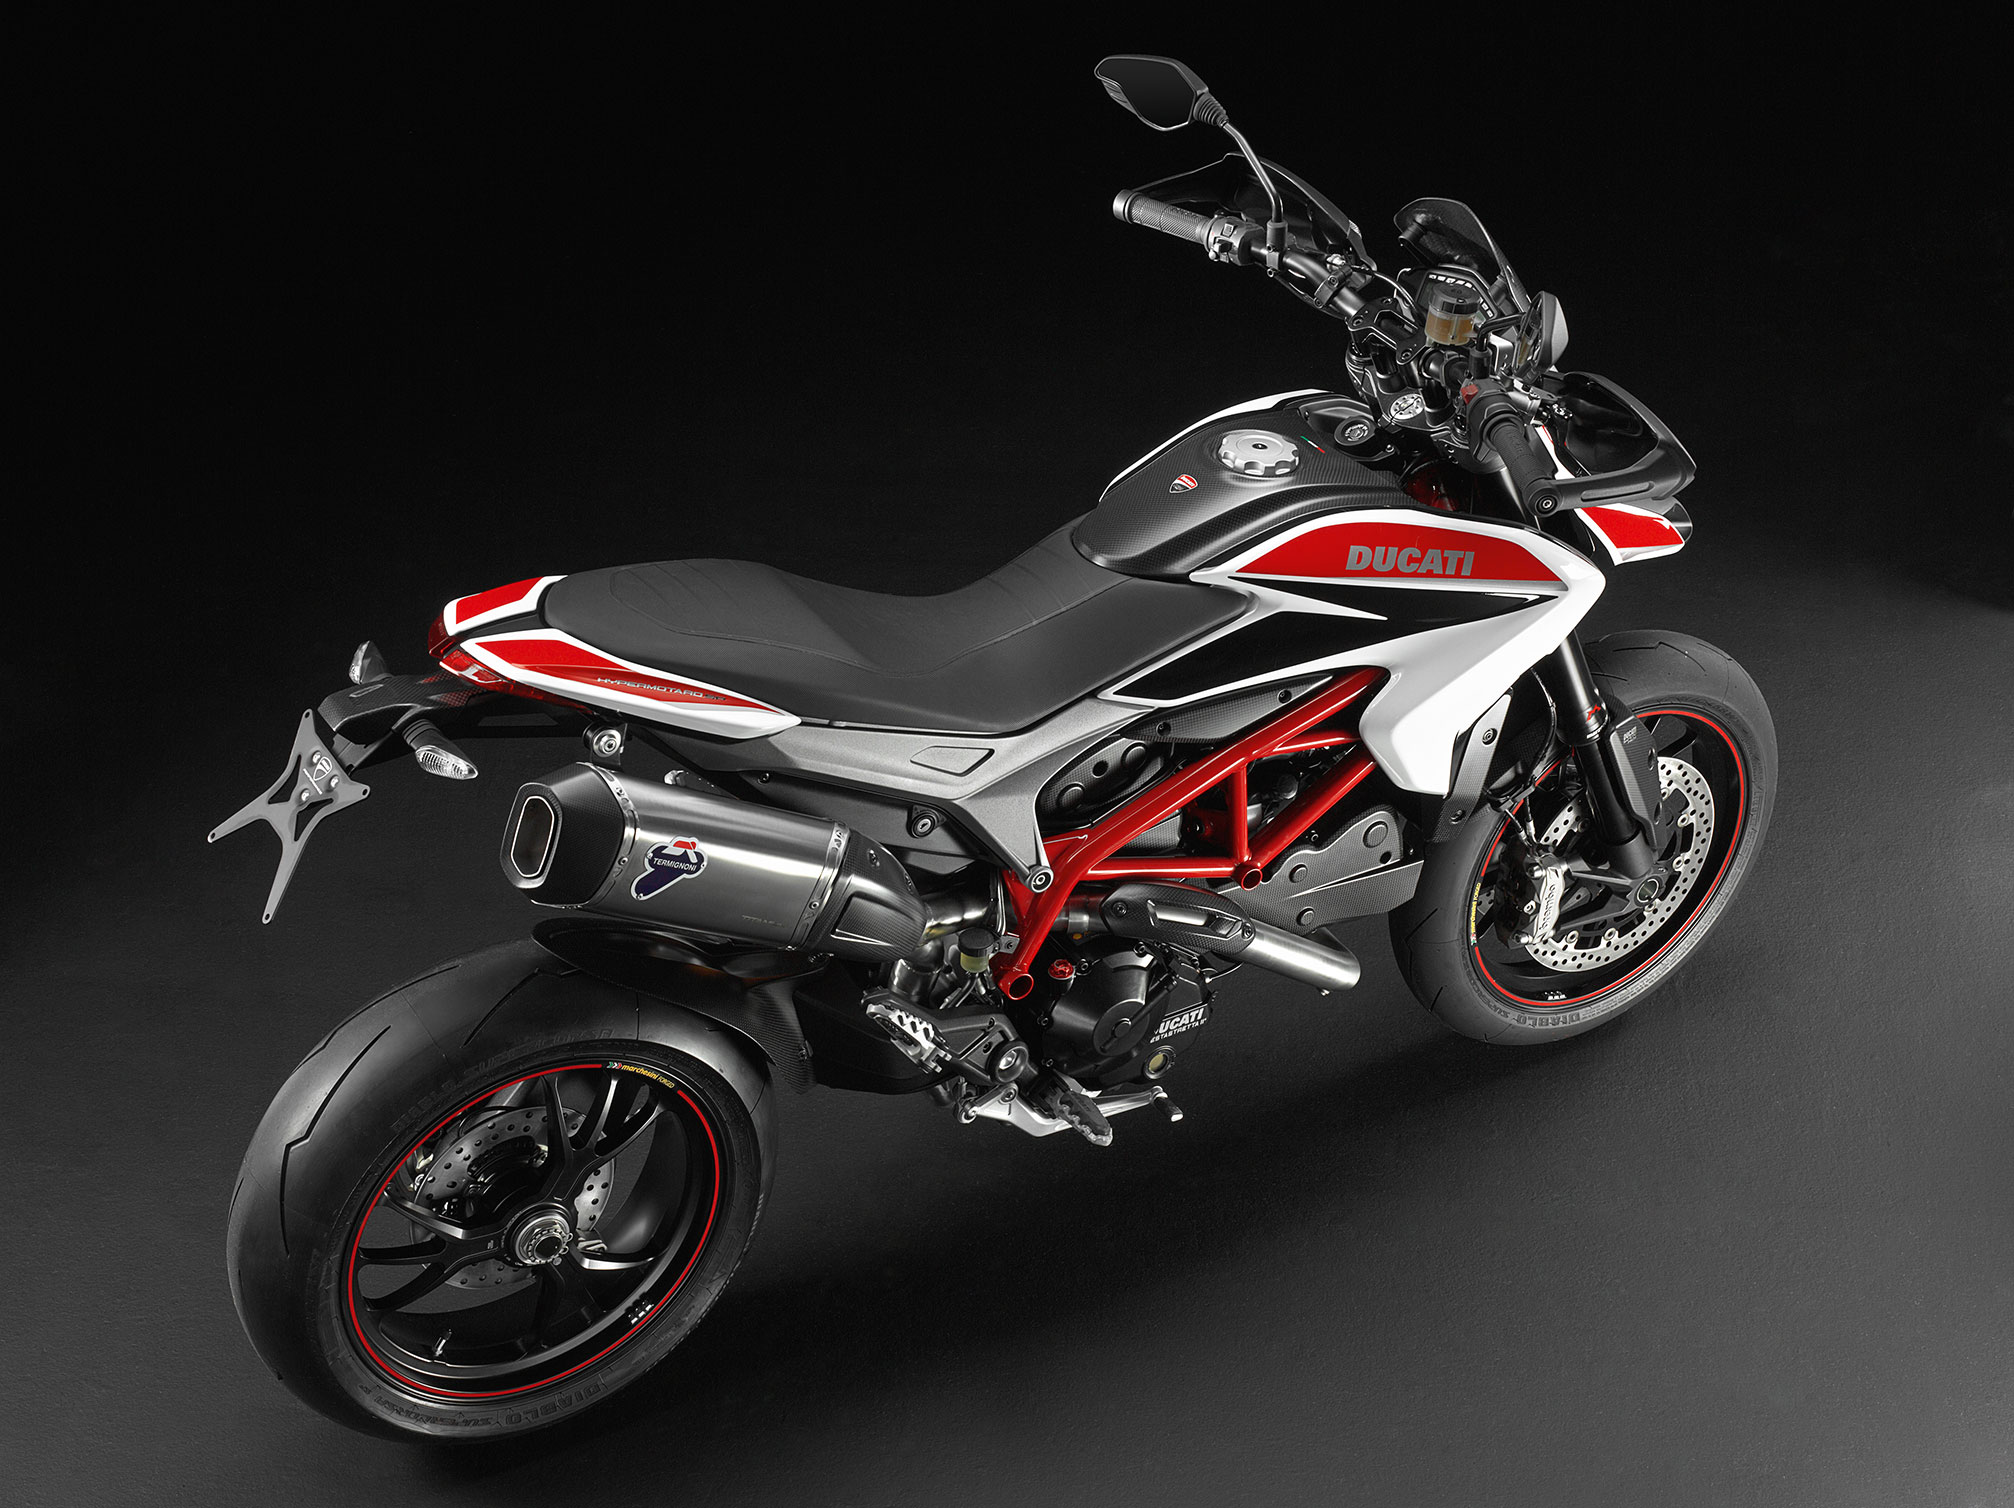 Ducati Hypermotard SP 2013 images #80084